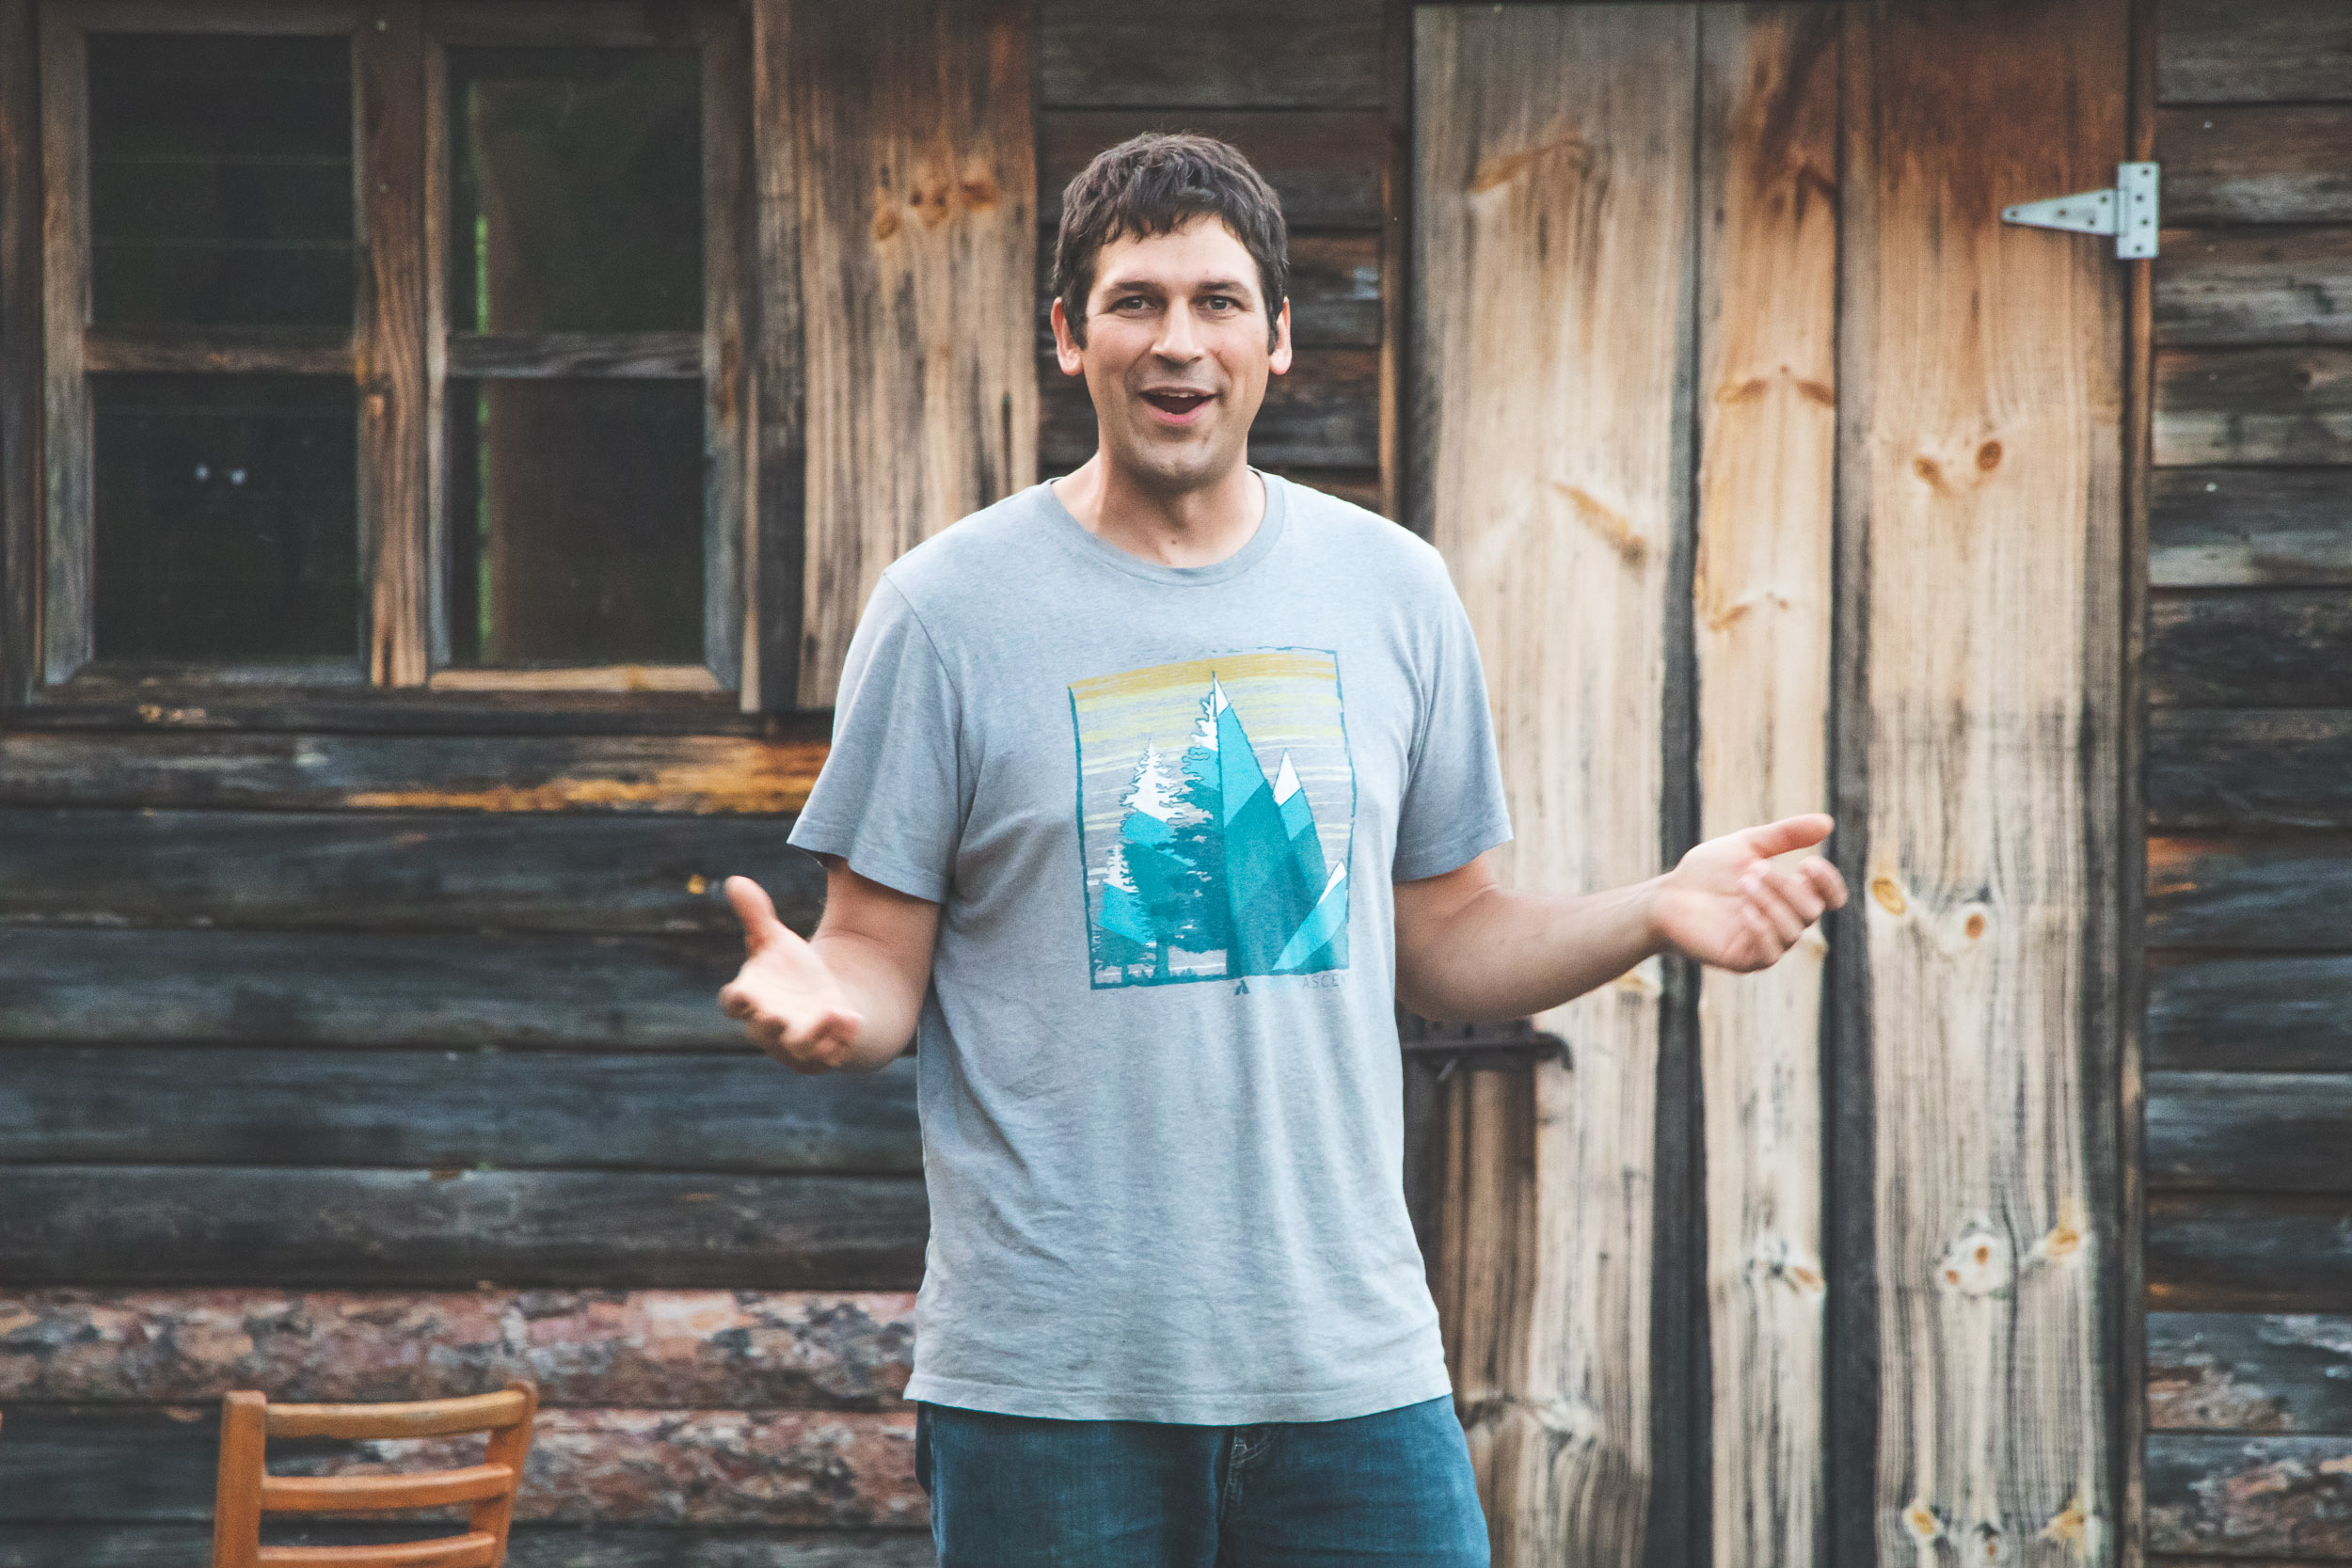 Speakers - Every week of camp, we bring in a new and exciting speaker. Come to Wakonda not only to be inspired, but to join us on a path to getting to know Jesus better as our Lord, King, personal Savior, and Friend.